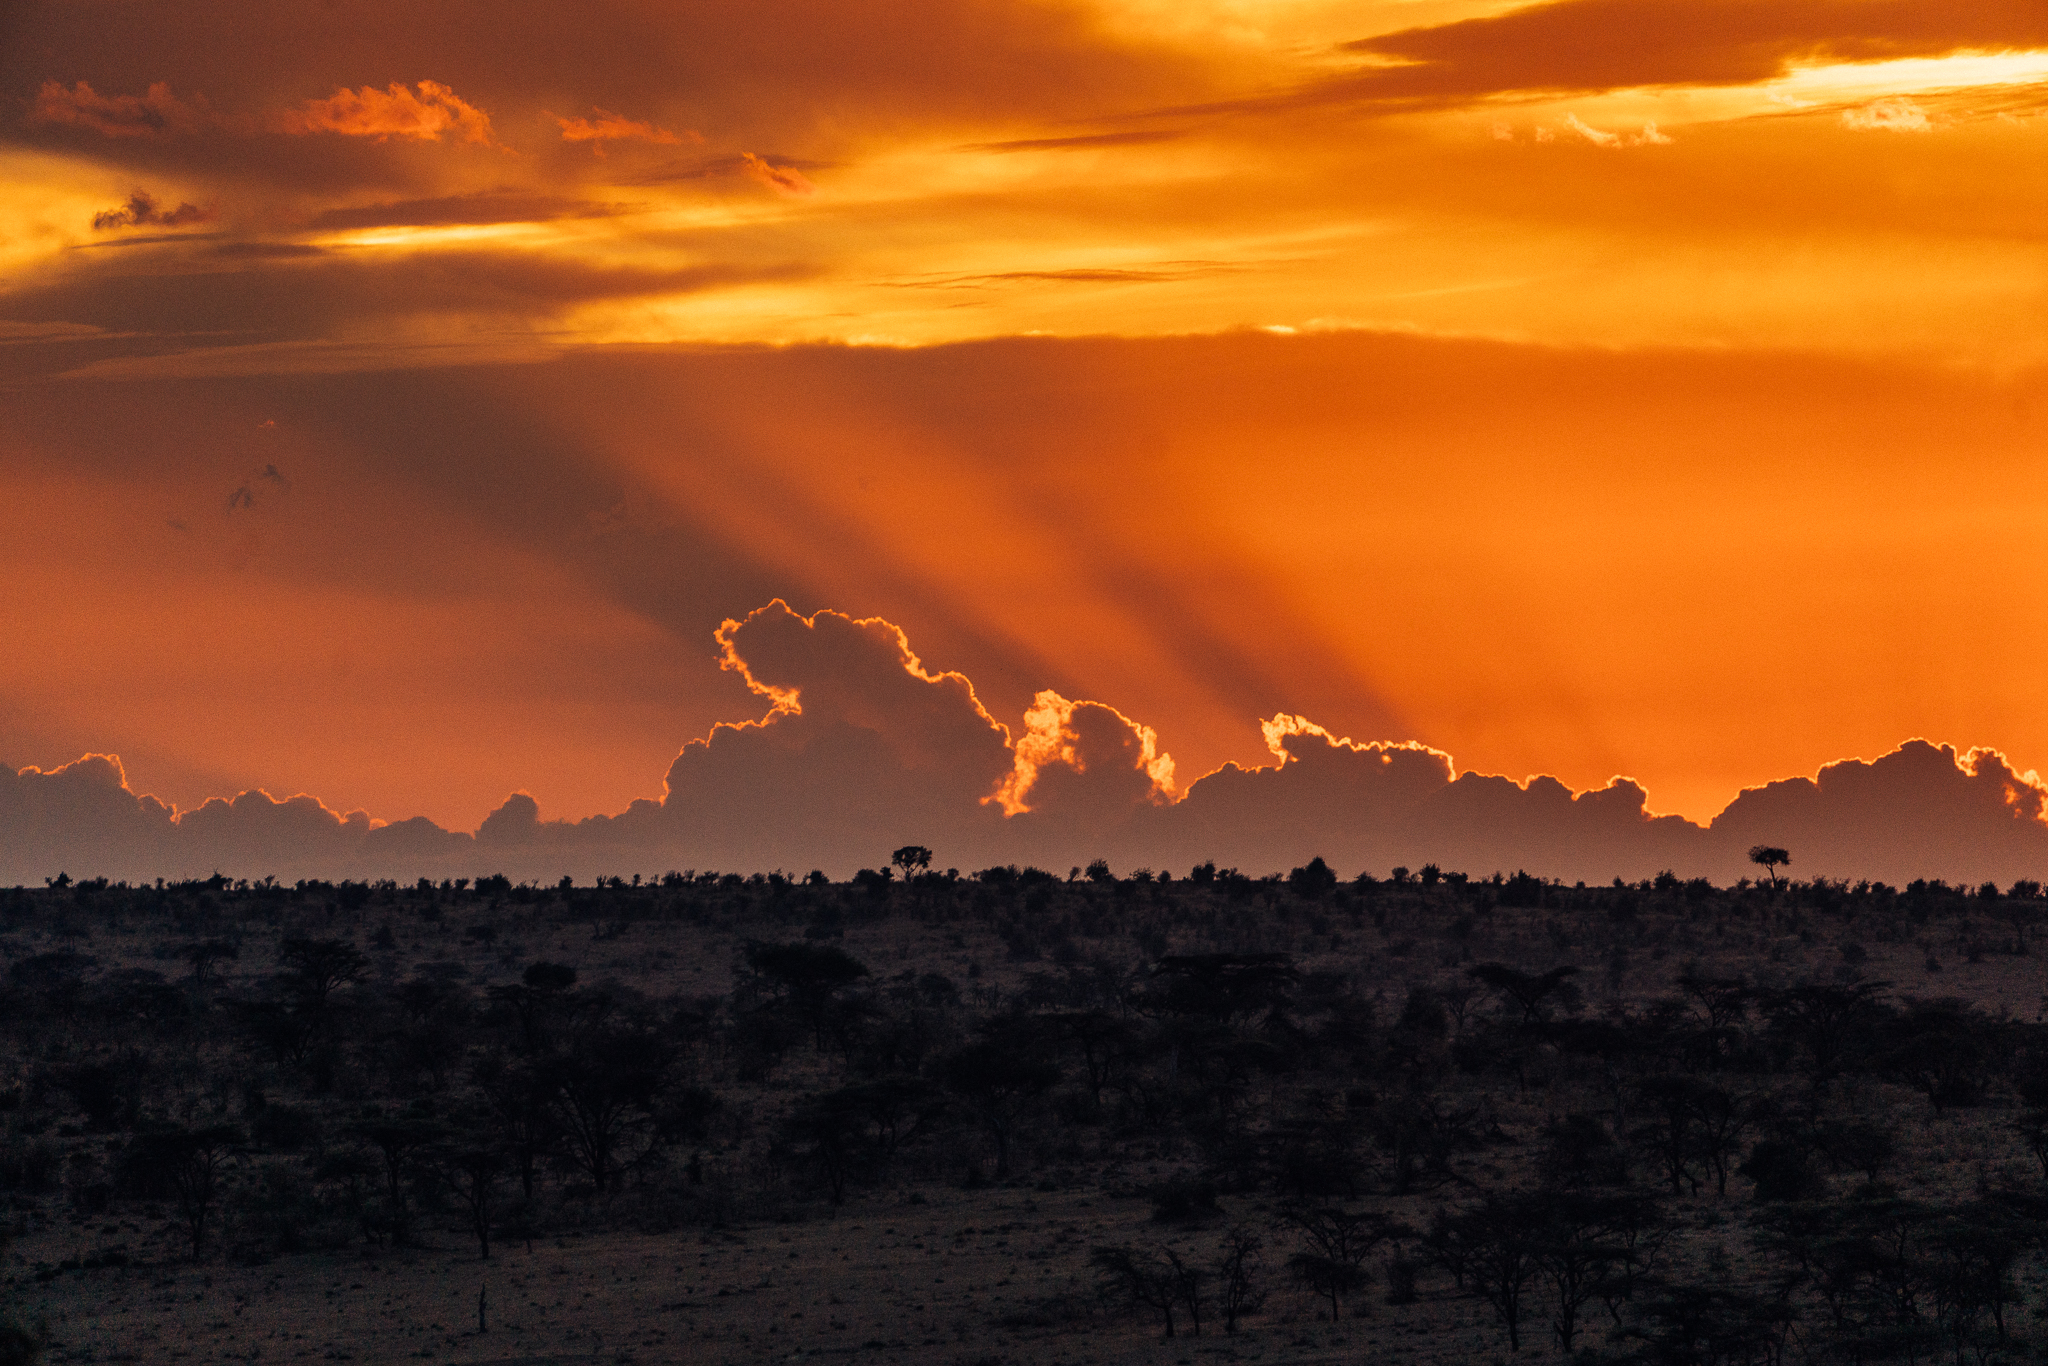 Maasai Mara Sunset - Kenya, Africa | Ph by Dave Krugman